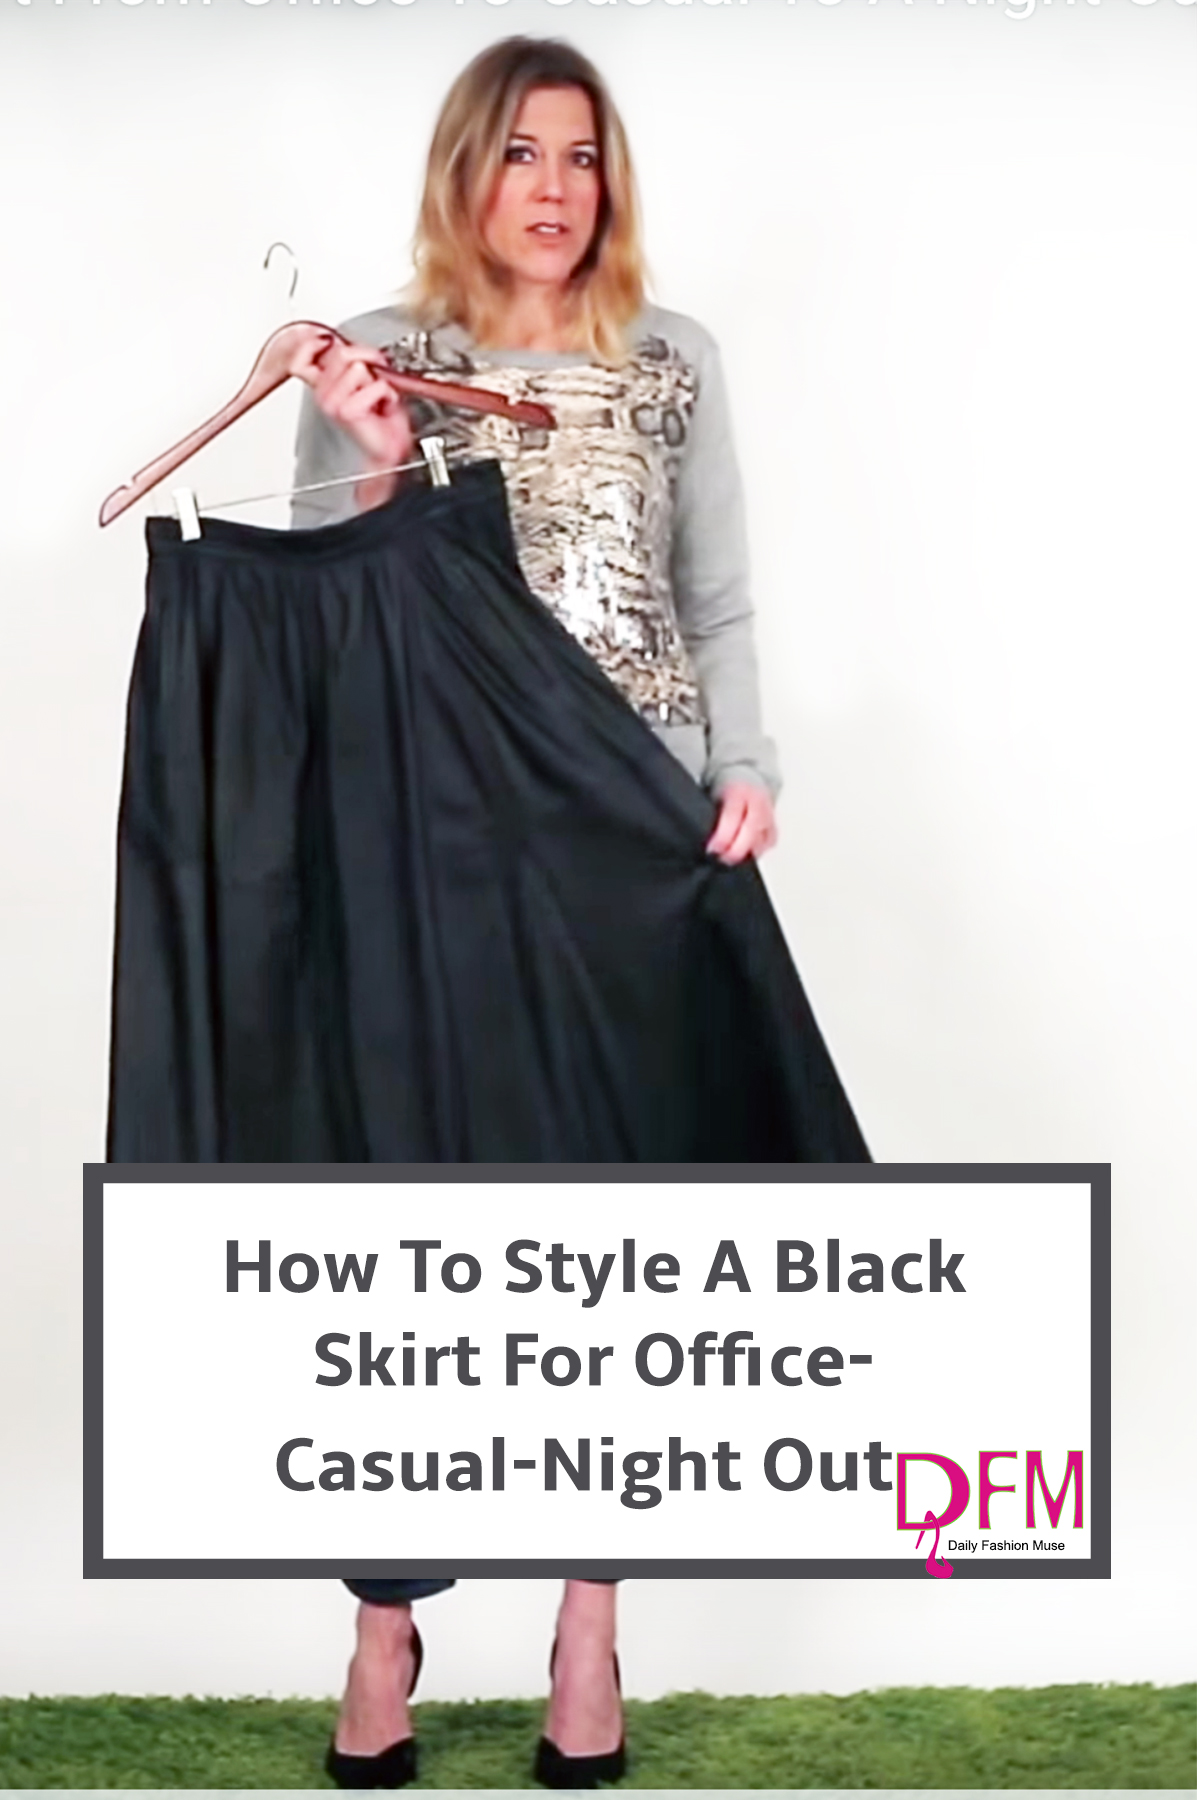 Make your wardrobe pieces work across your entire wardrobe. I'll show you how this skirt can be worn to the office, for a casual day, and for a night out. Click to watch the video.